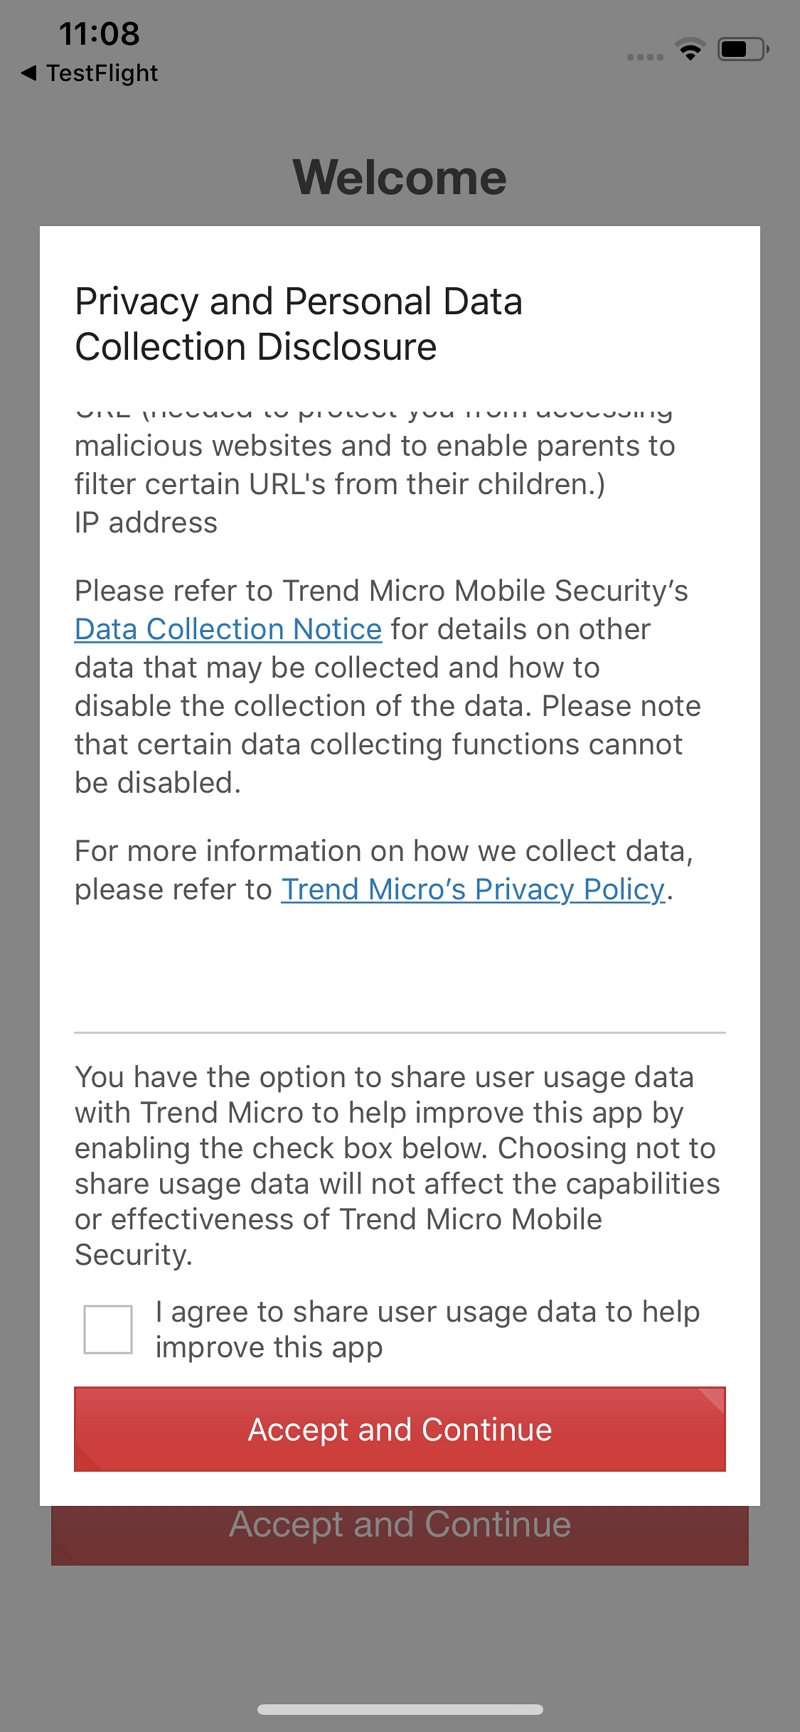 I agree to share user usage data to help improve this app